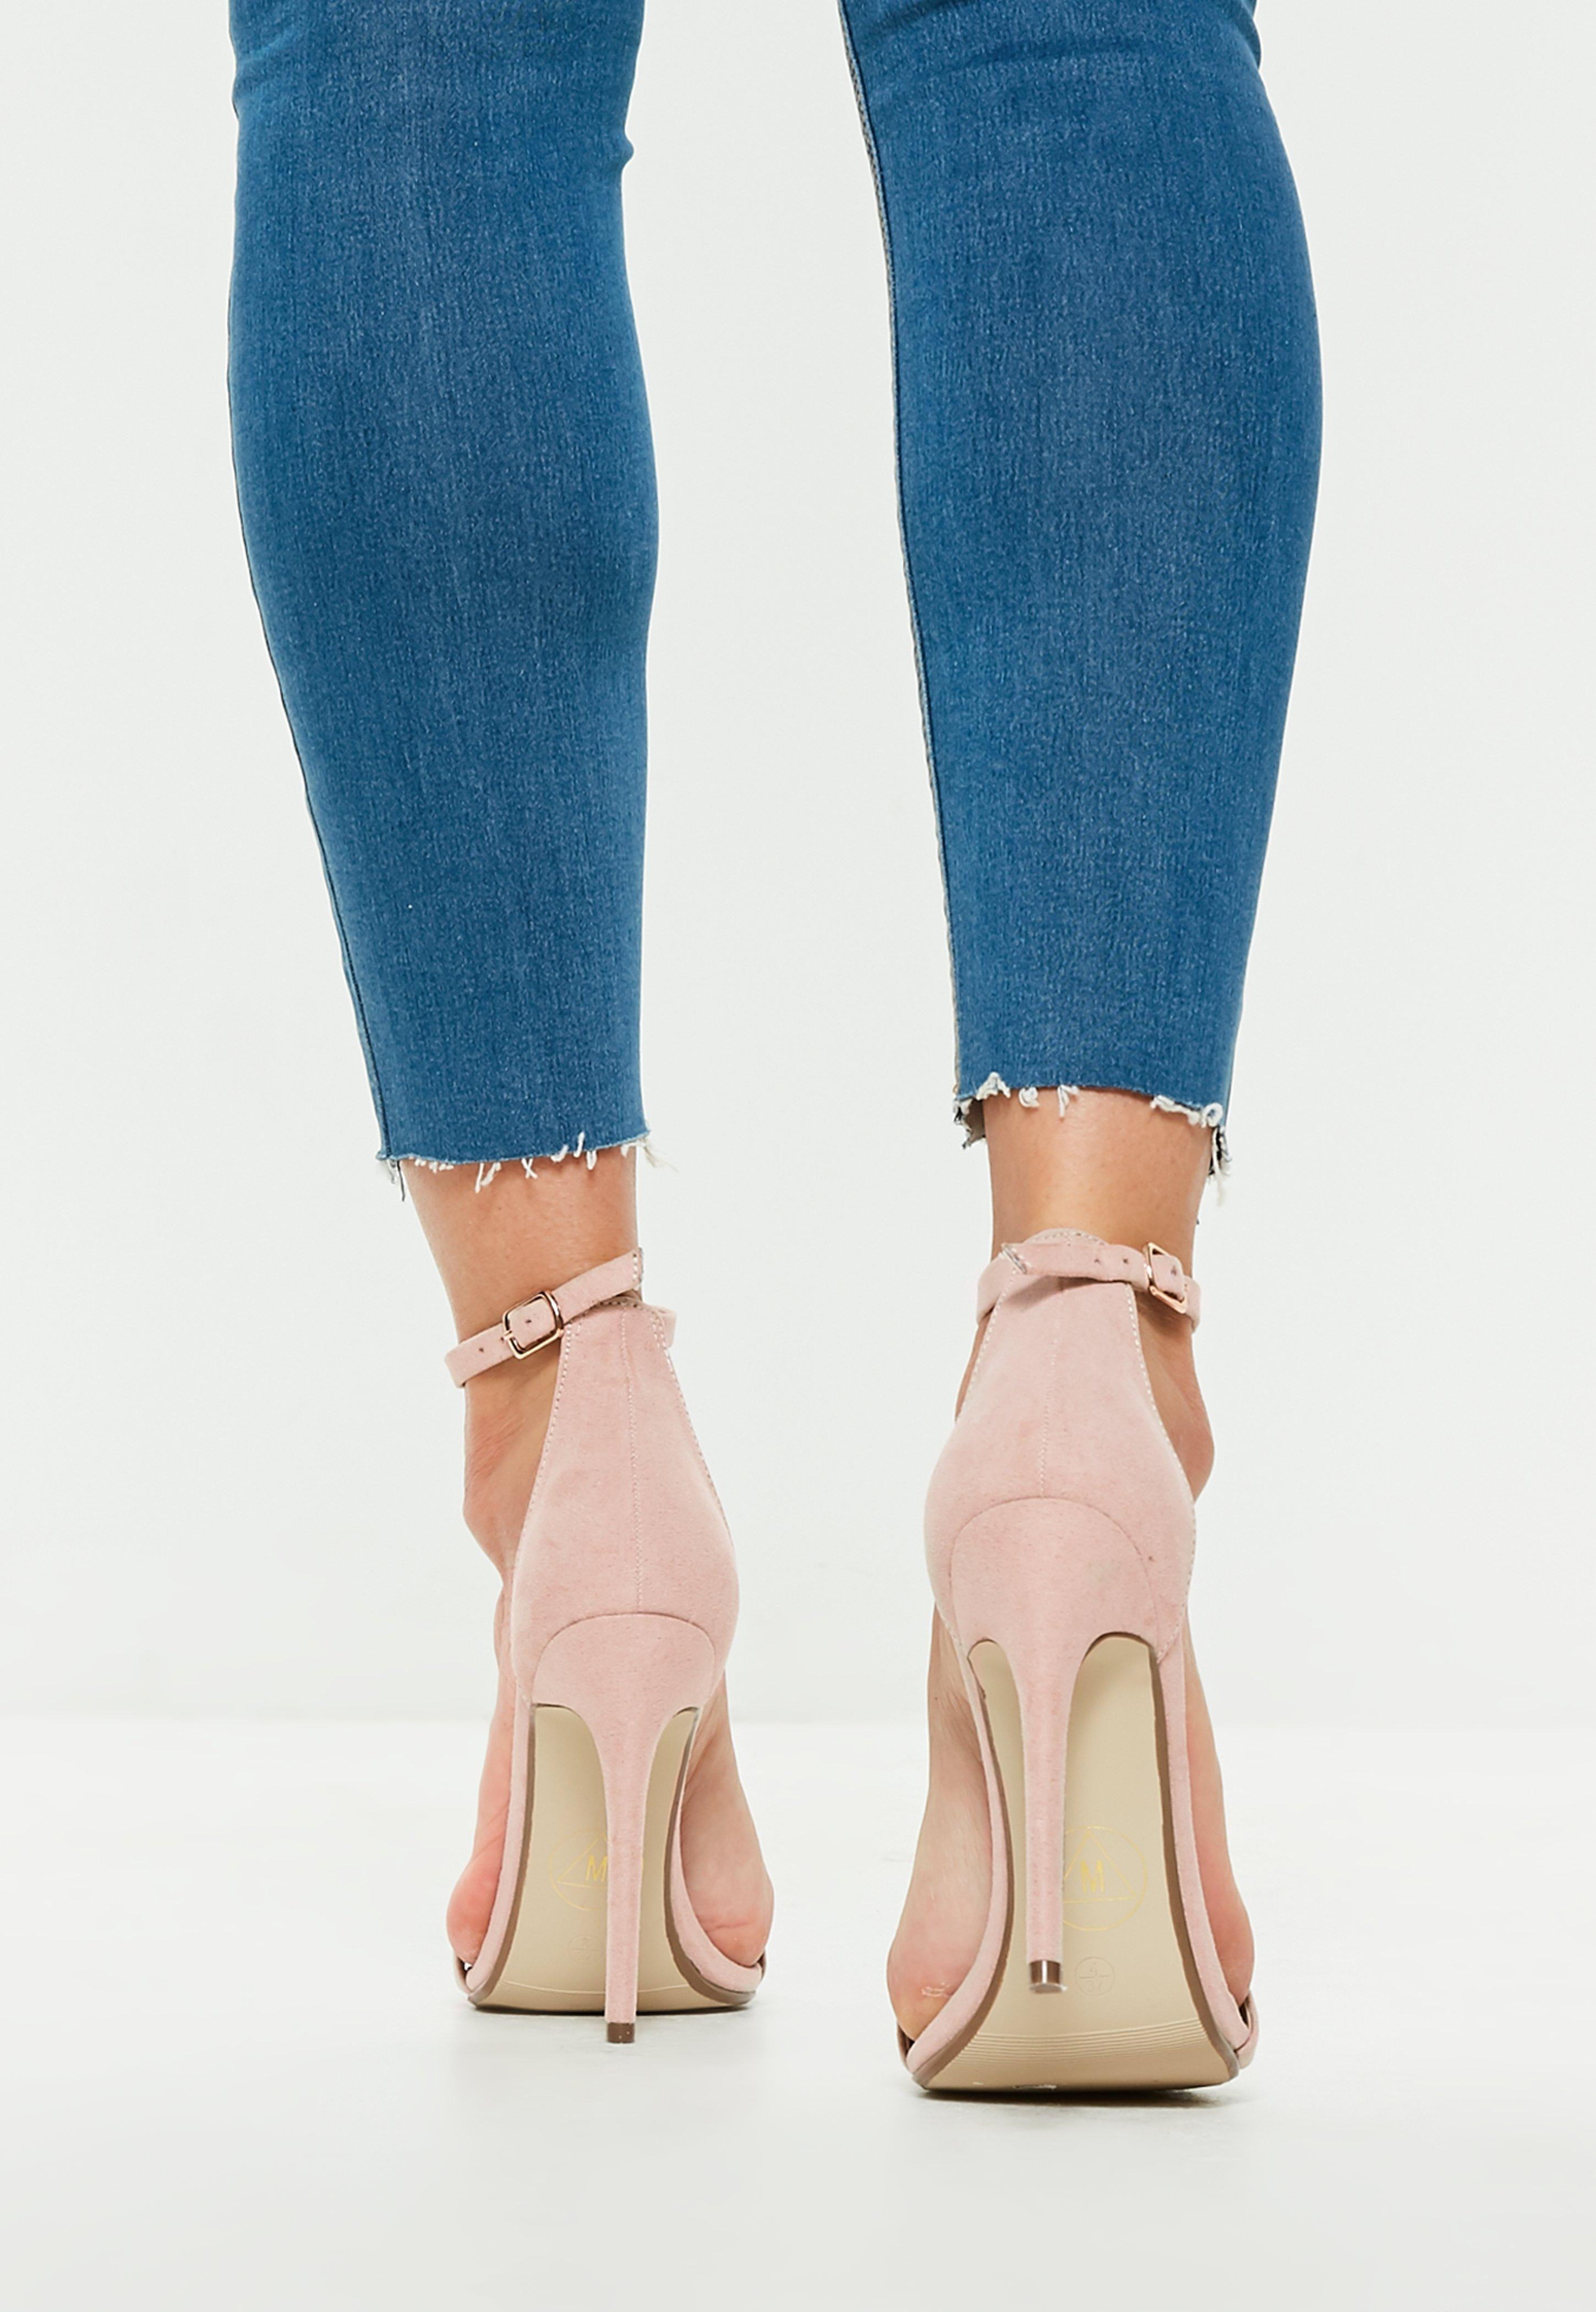 48edda79621 Missguided Nude Faux Suede Two Strap Barely There Heels in Blue - Lyst